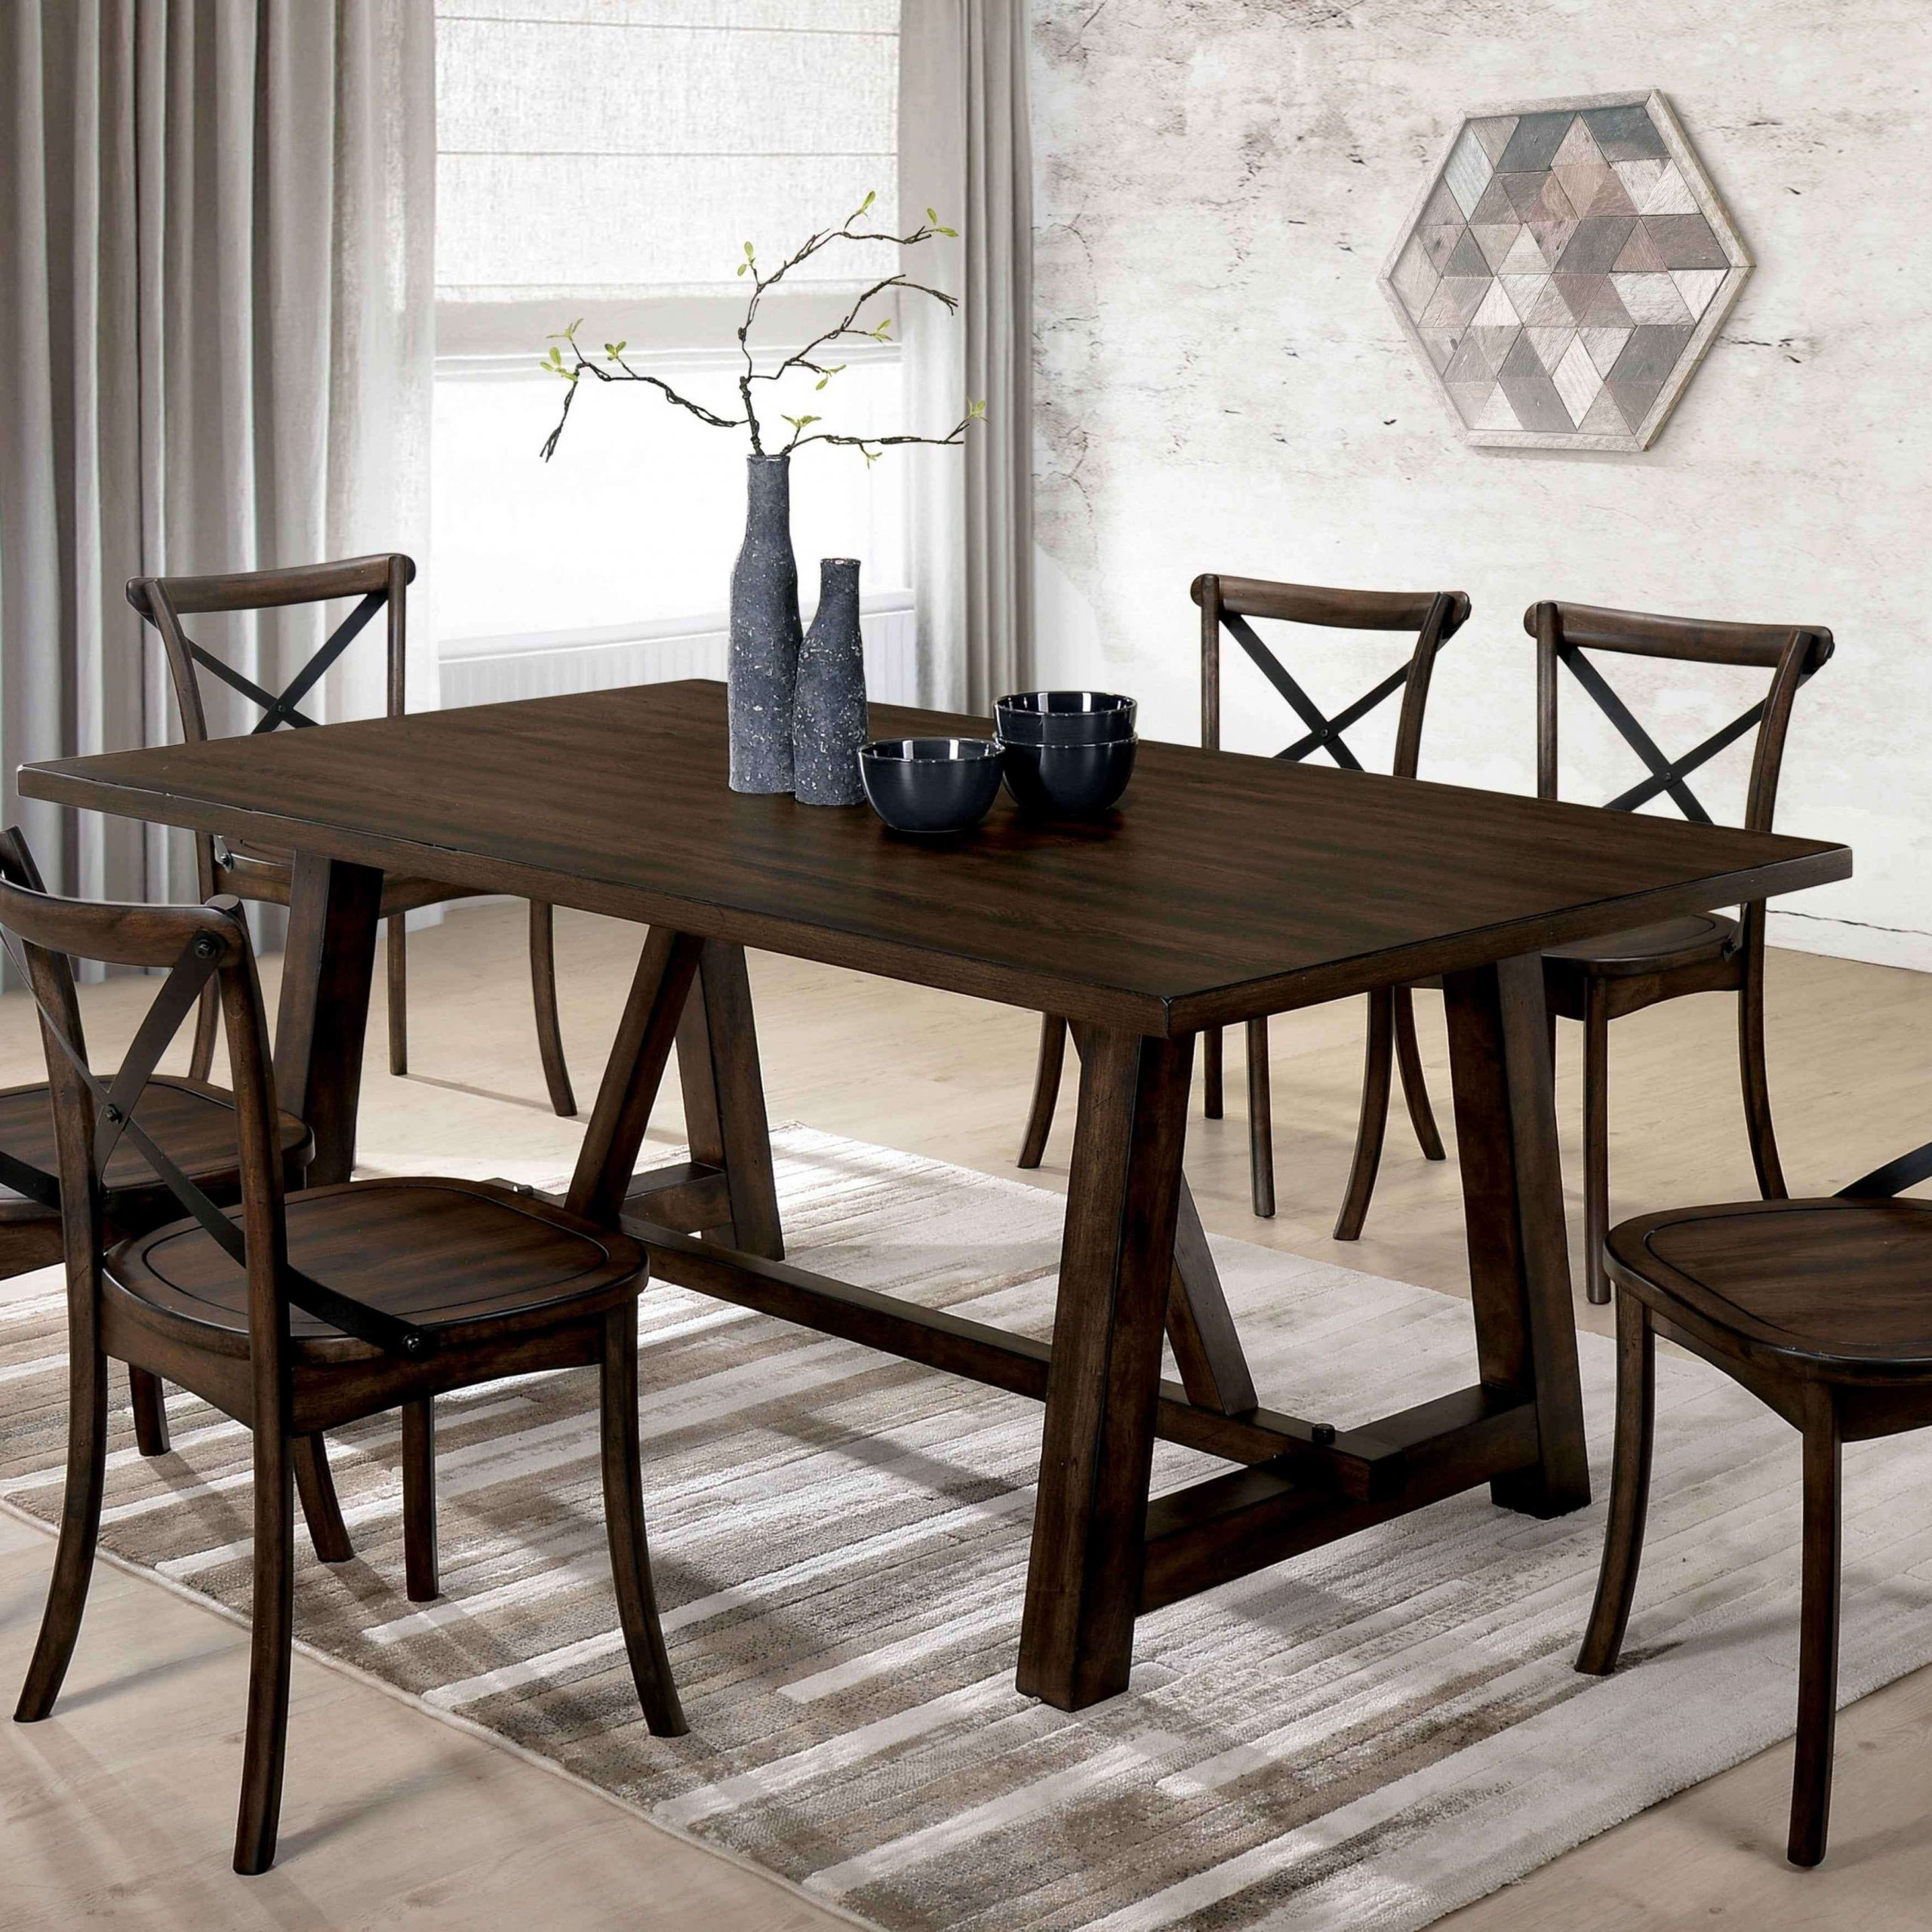 Delectable Furniture Lee Modern Farmhouse Dining Table Oak For Best And Newest Modern Farmhouse Extending Dining Tables (View 4 of 25)